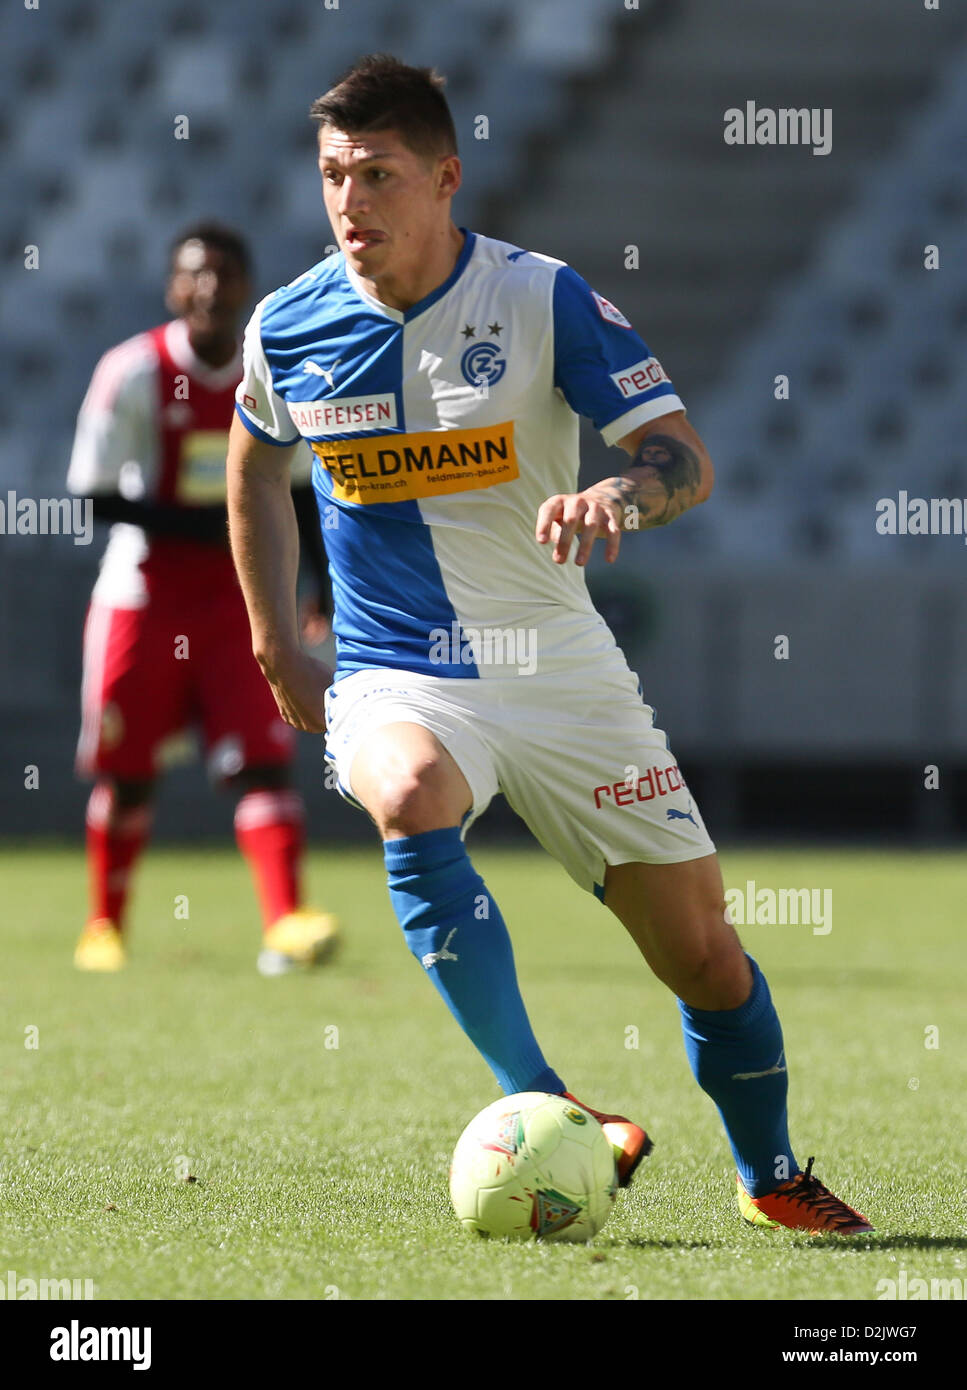 CAPE TOWN, South Africa - Saturday 26 January 2013, Steven Zuber of Grasshopper Club Zurich during the soccer/football - Stock Image